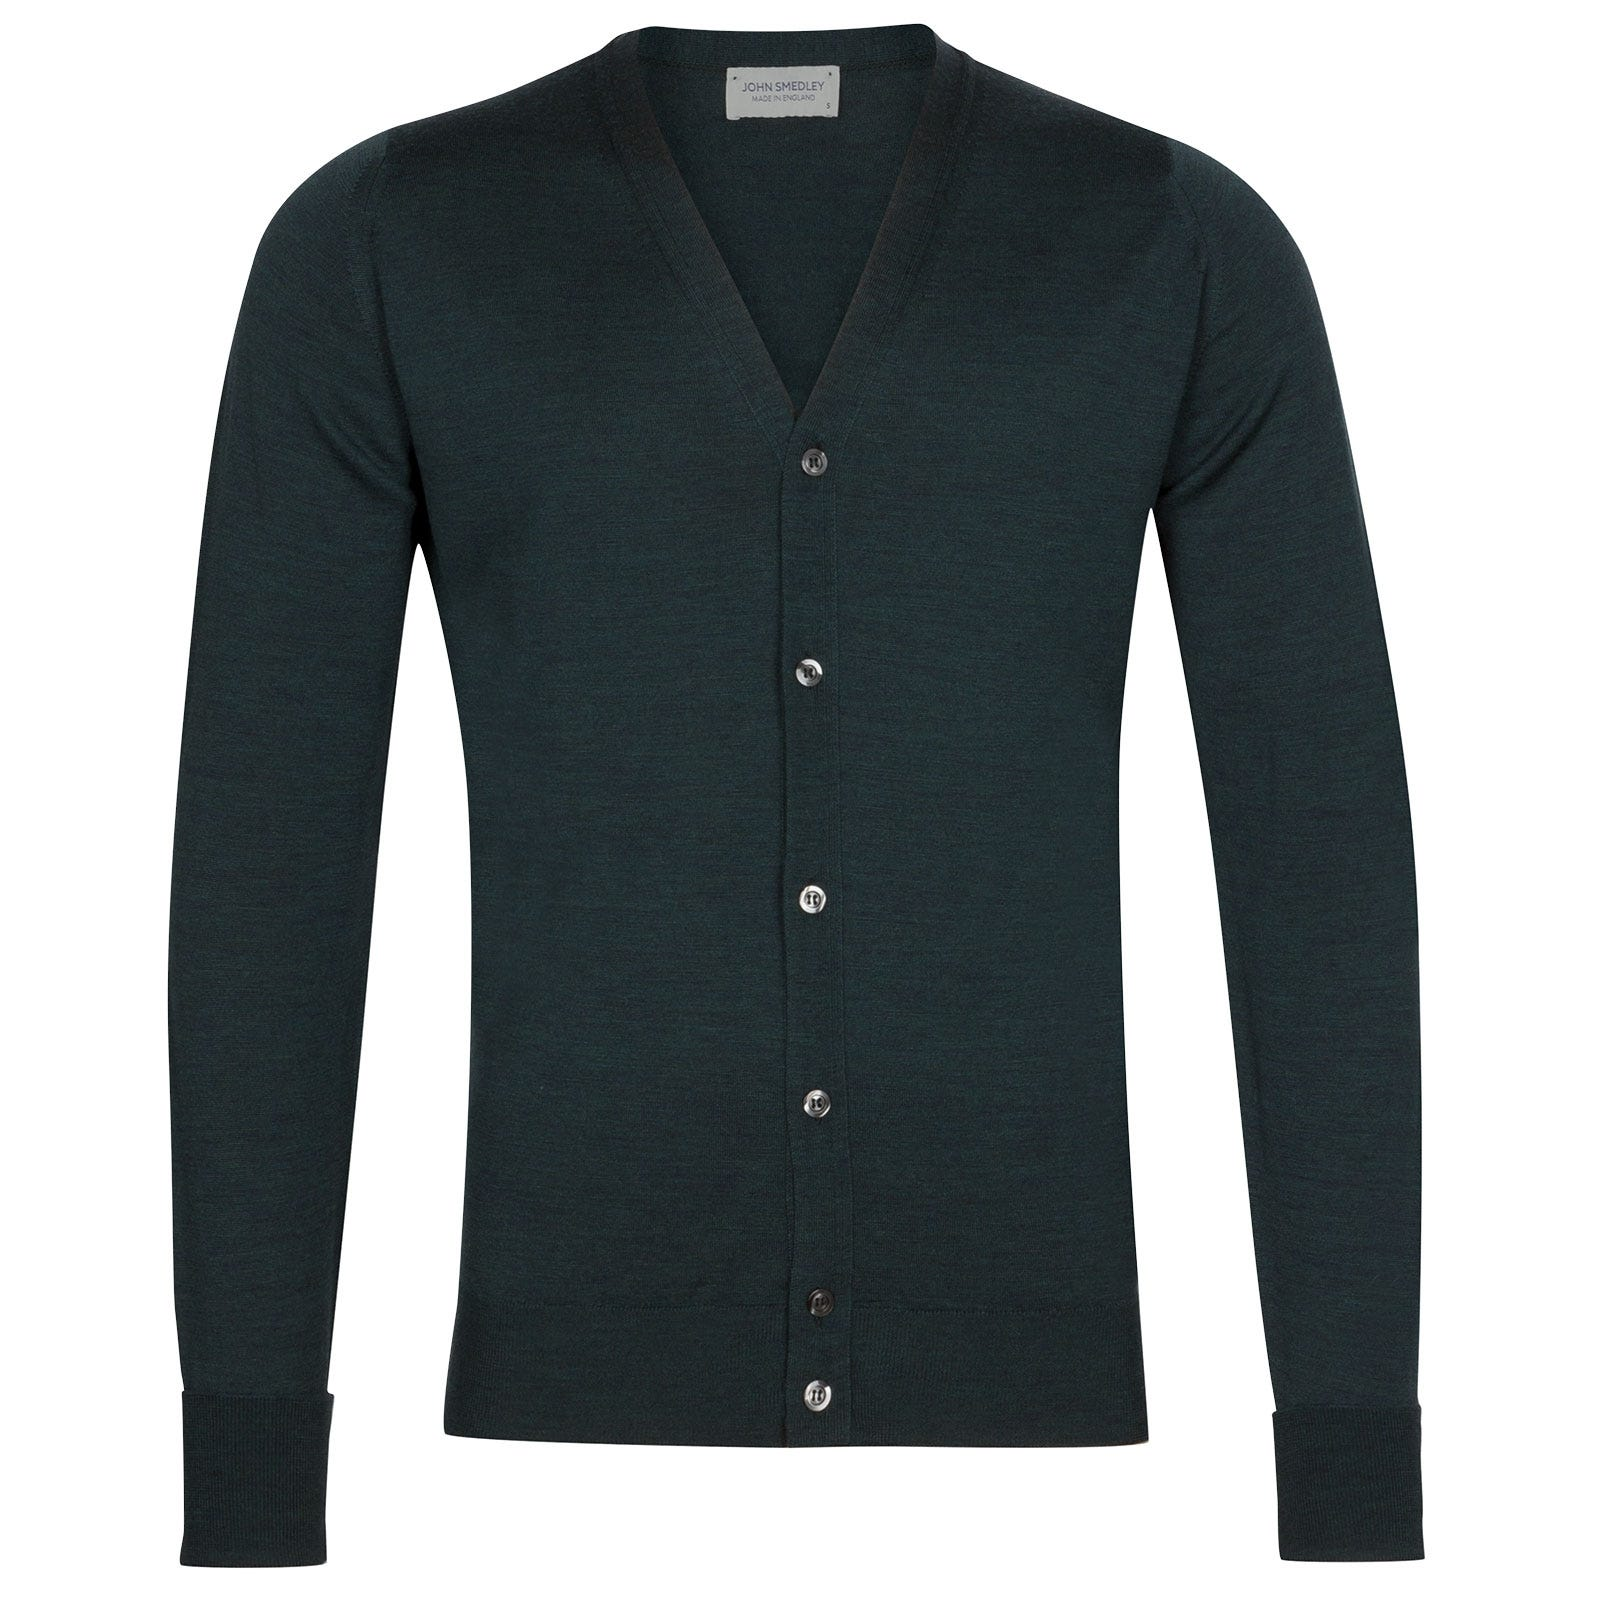 John Smedley Bryn Merino Wool Cardigan in Racing Green-XXL